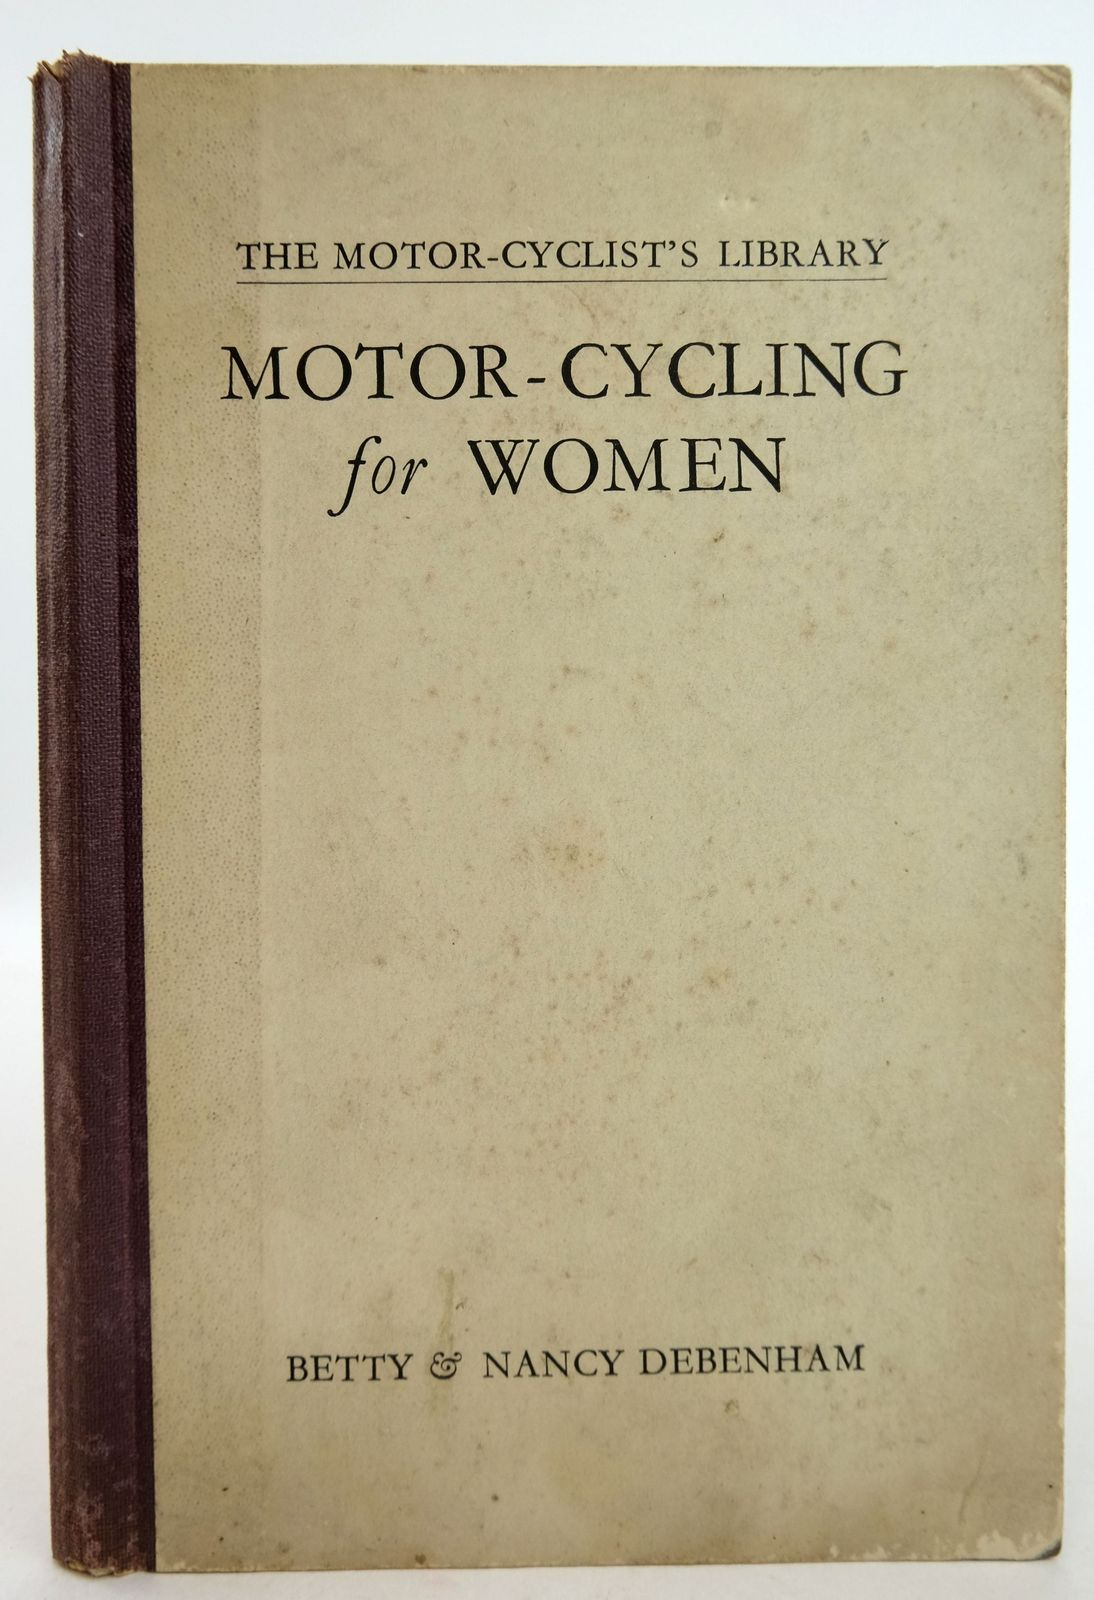 Photo of MOTOR-CYCLING FOR WOMEN (THE MOTOR-CYCLIST'S LIBRARY)- Stock Number: 1819459